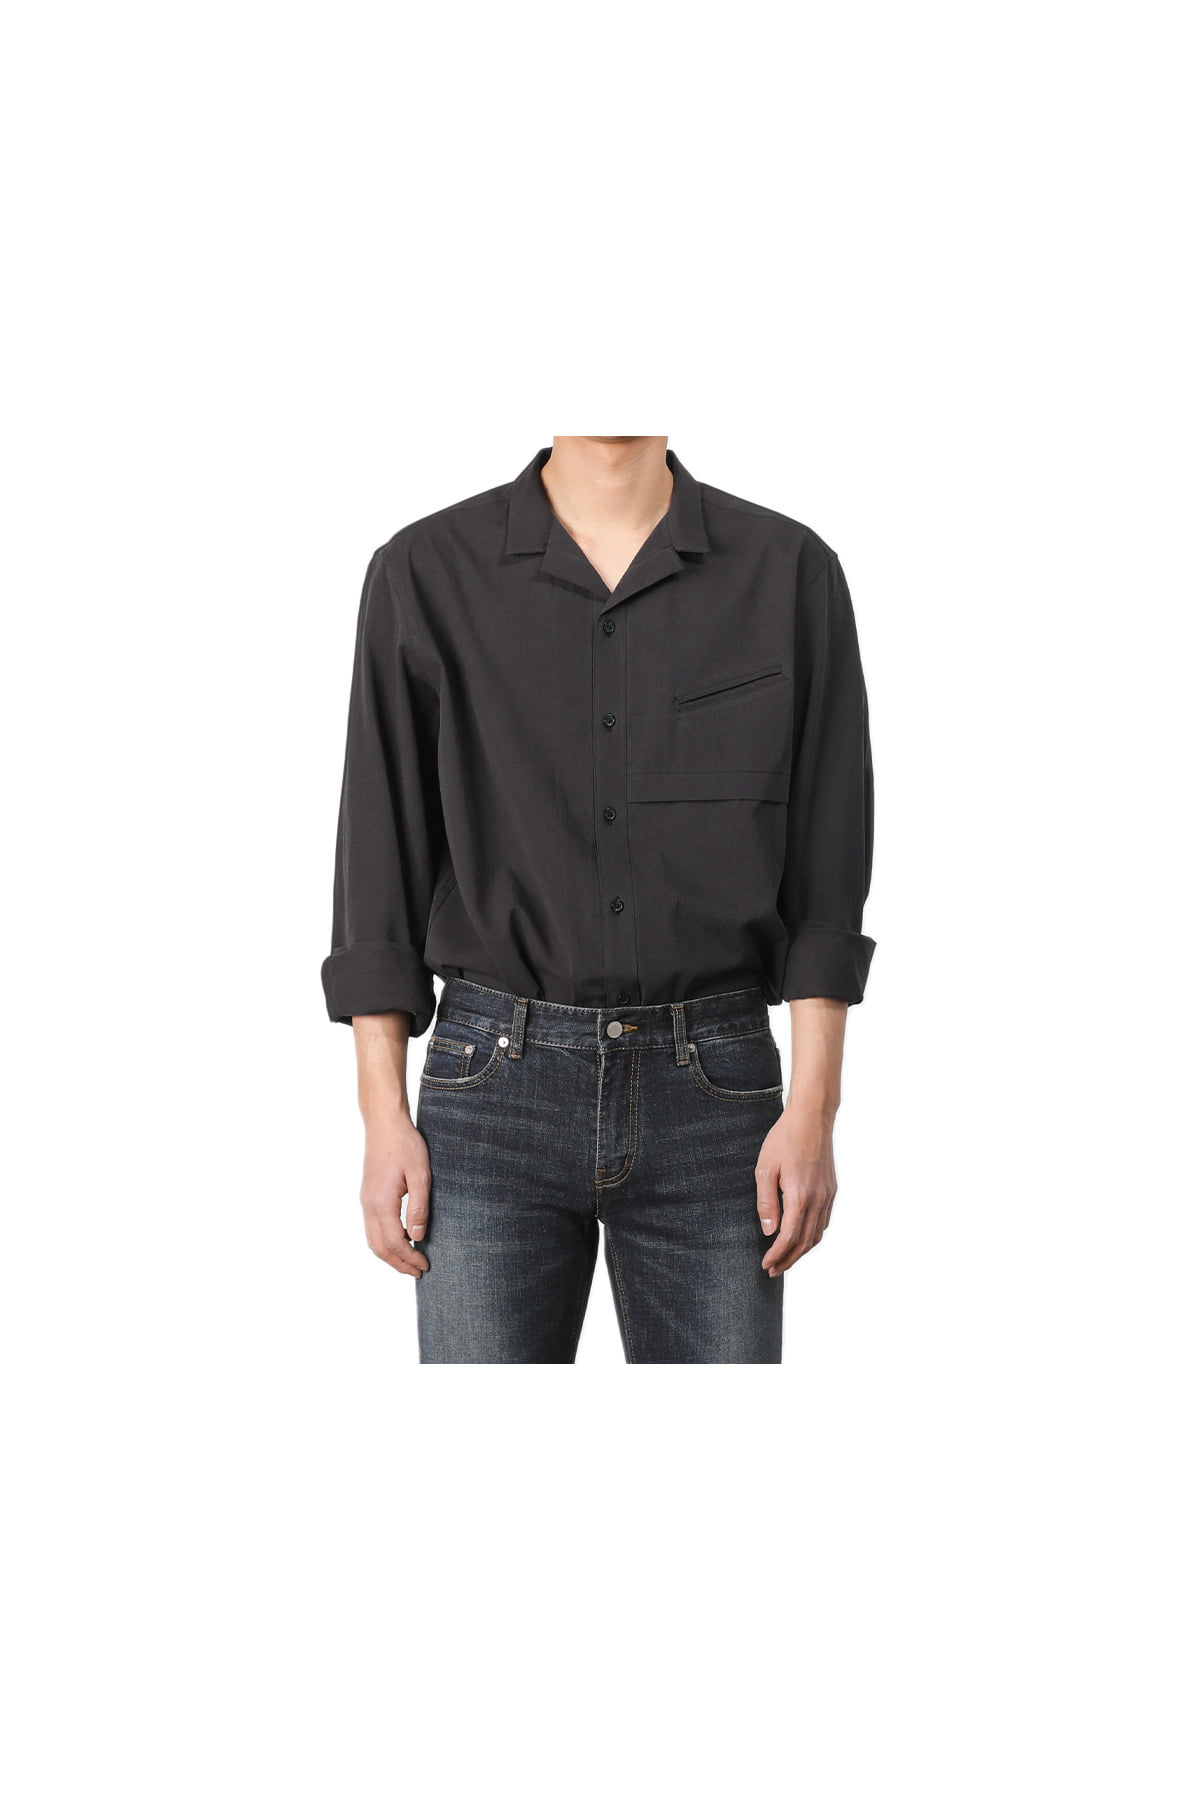 Ishinomaki open collar shirt (black) #jp34